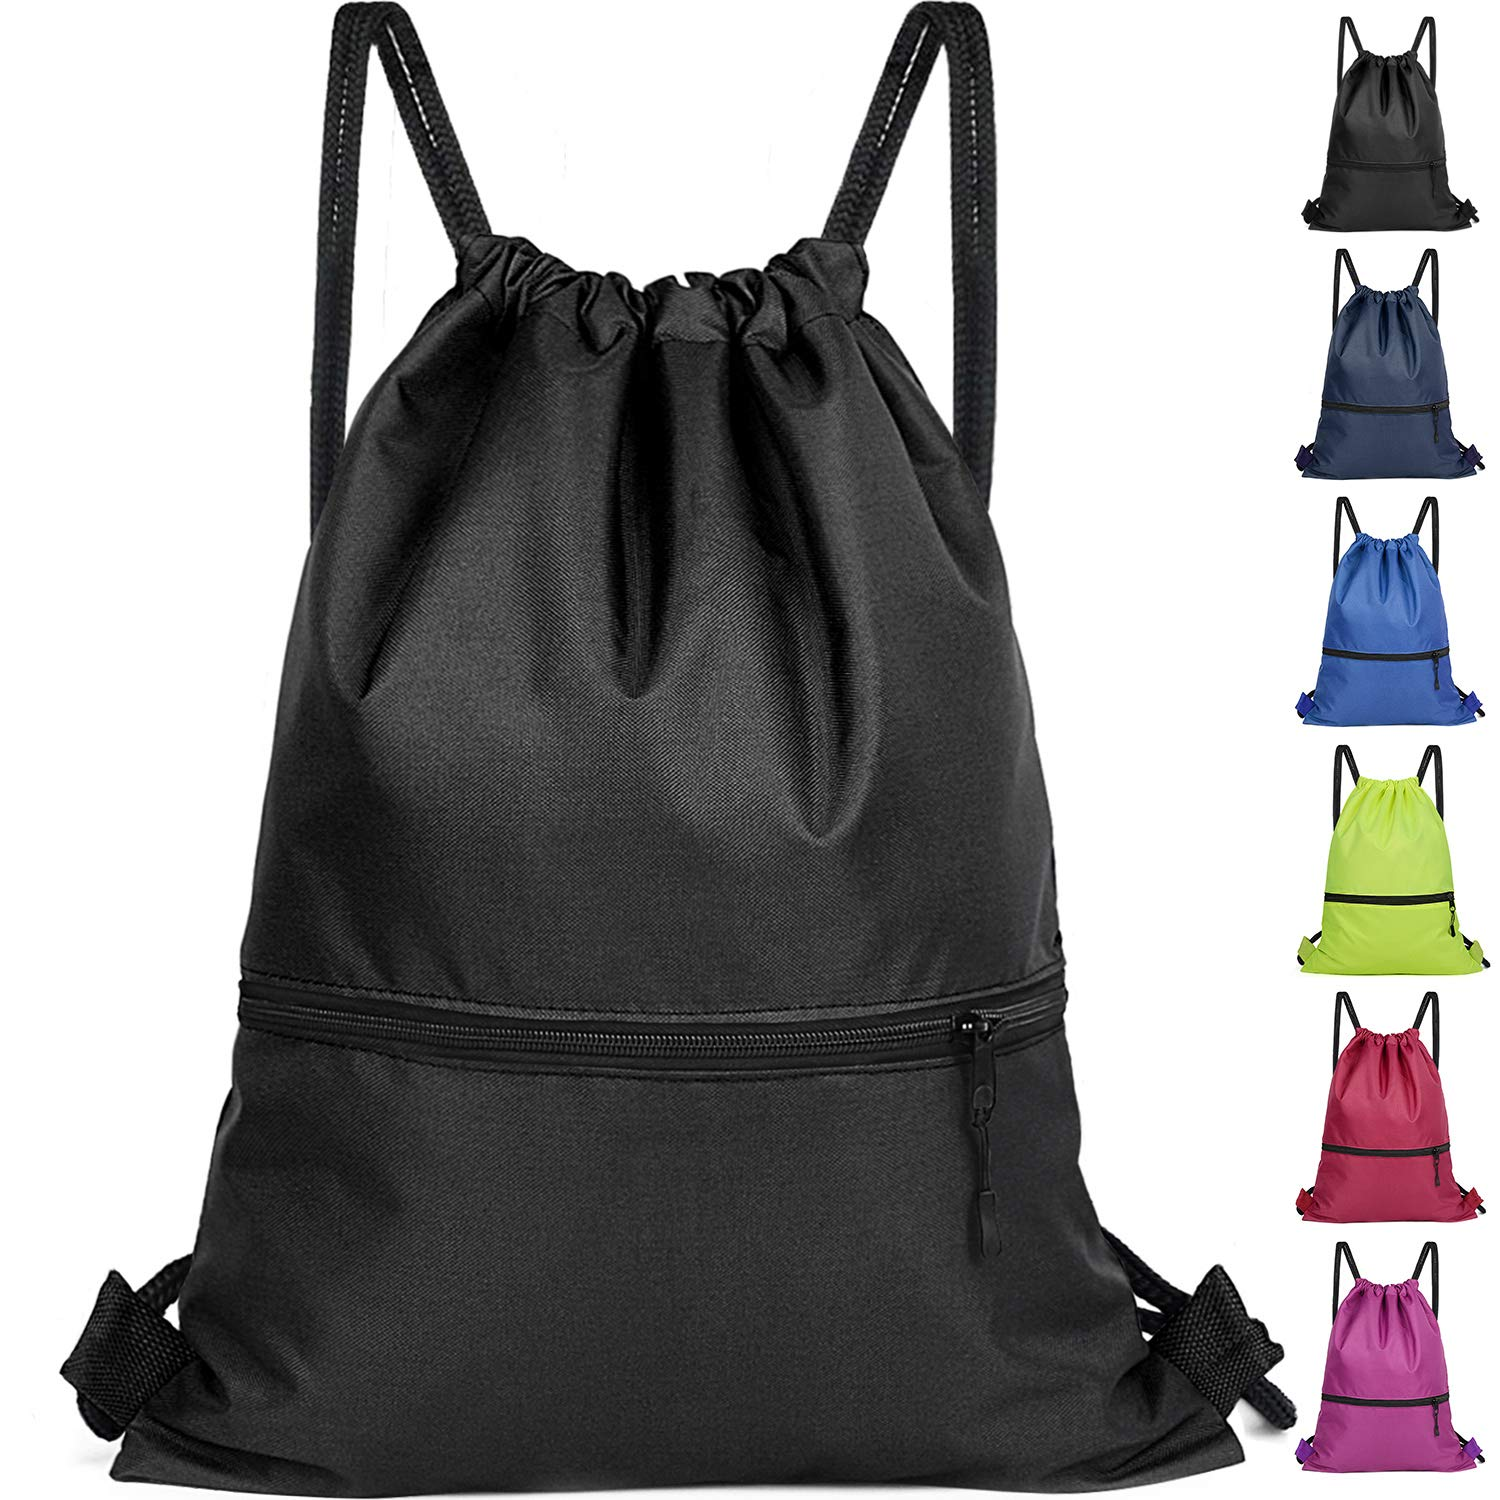 Drawstring Backpack Bag - Gym Sackpack Cinch Bags for Men and Women - Large Size with Two Great Zipper Pockets for Gym, Yoga, Travel, Hiking, Beach Bags - Black